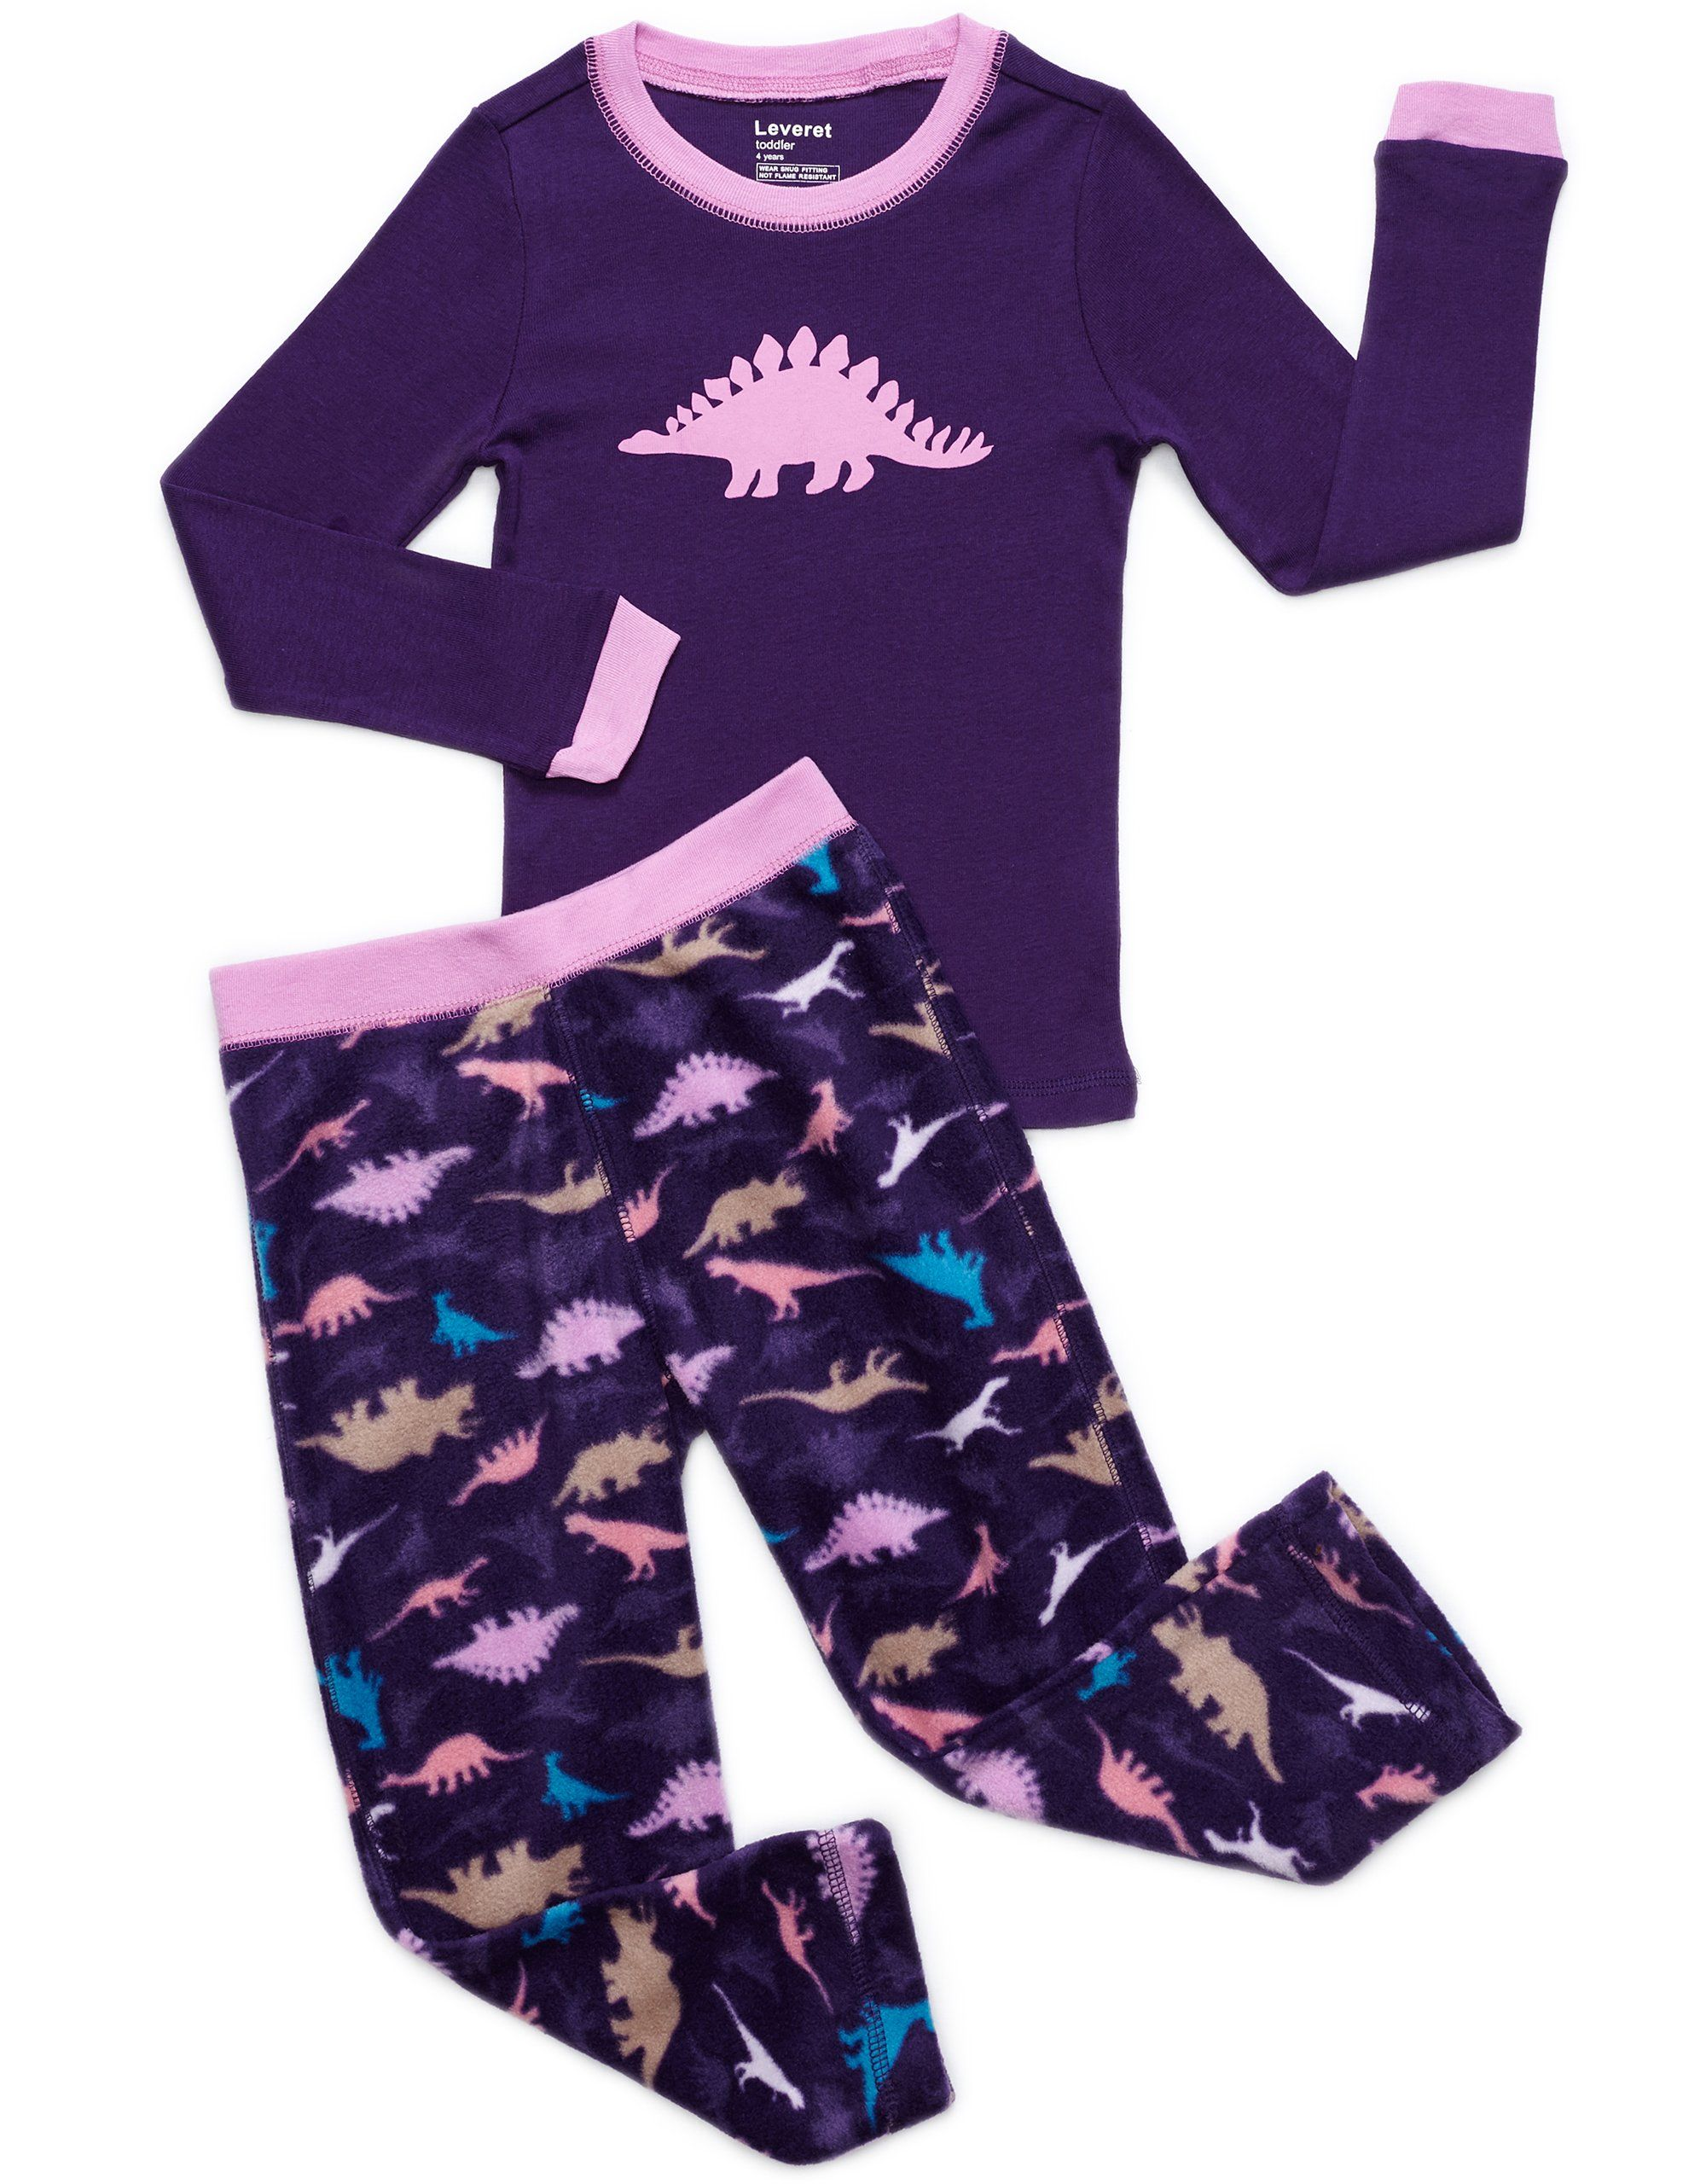 AmazonSmile: Leveret Girls 2 Piece Pajama Cotton Top & Fleece ...